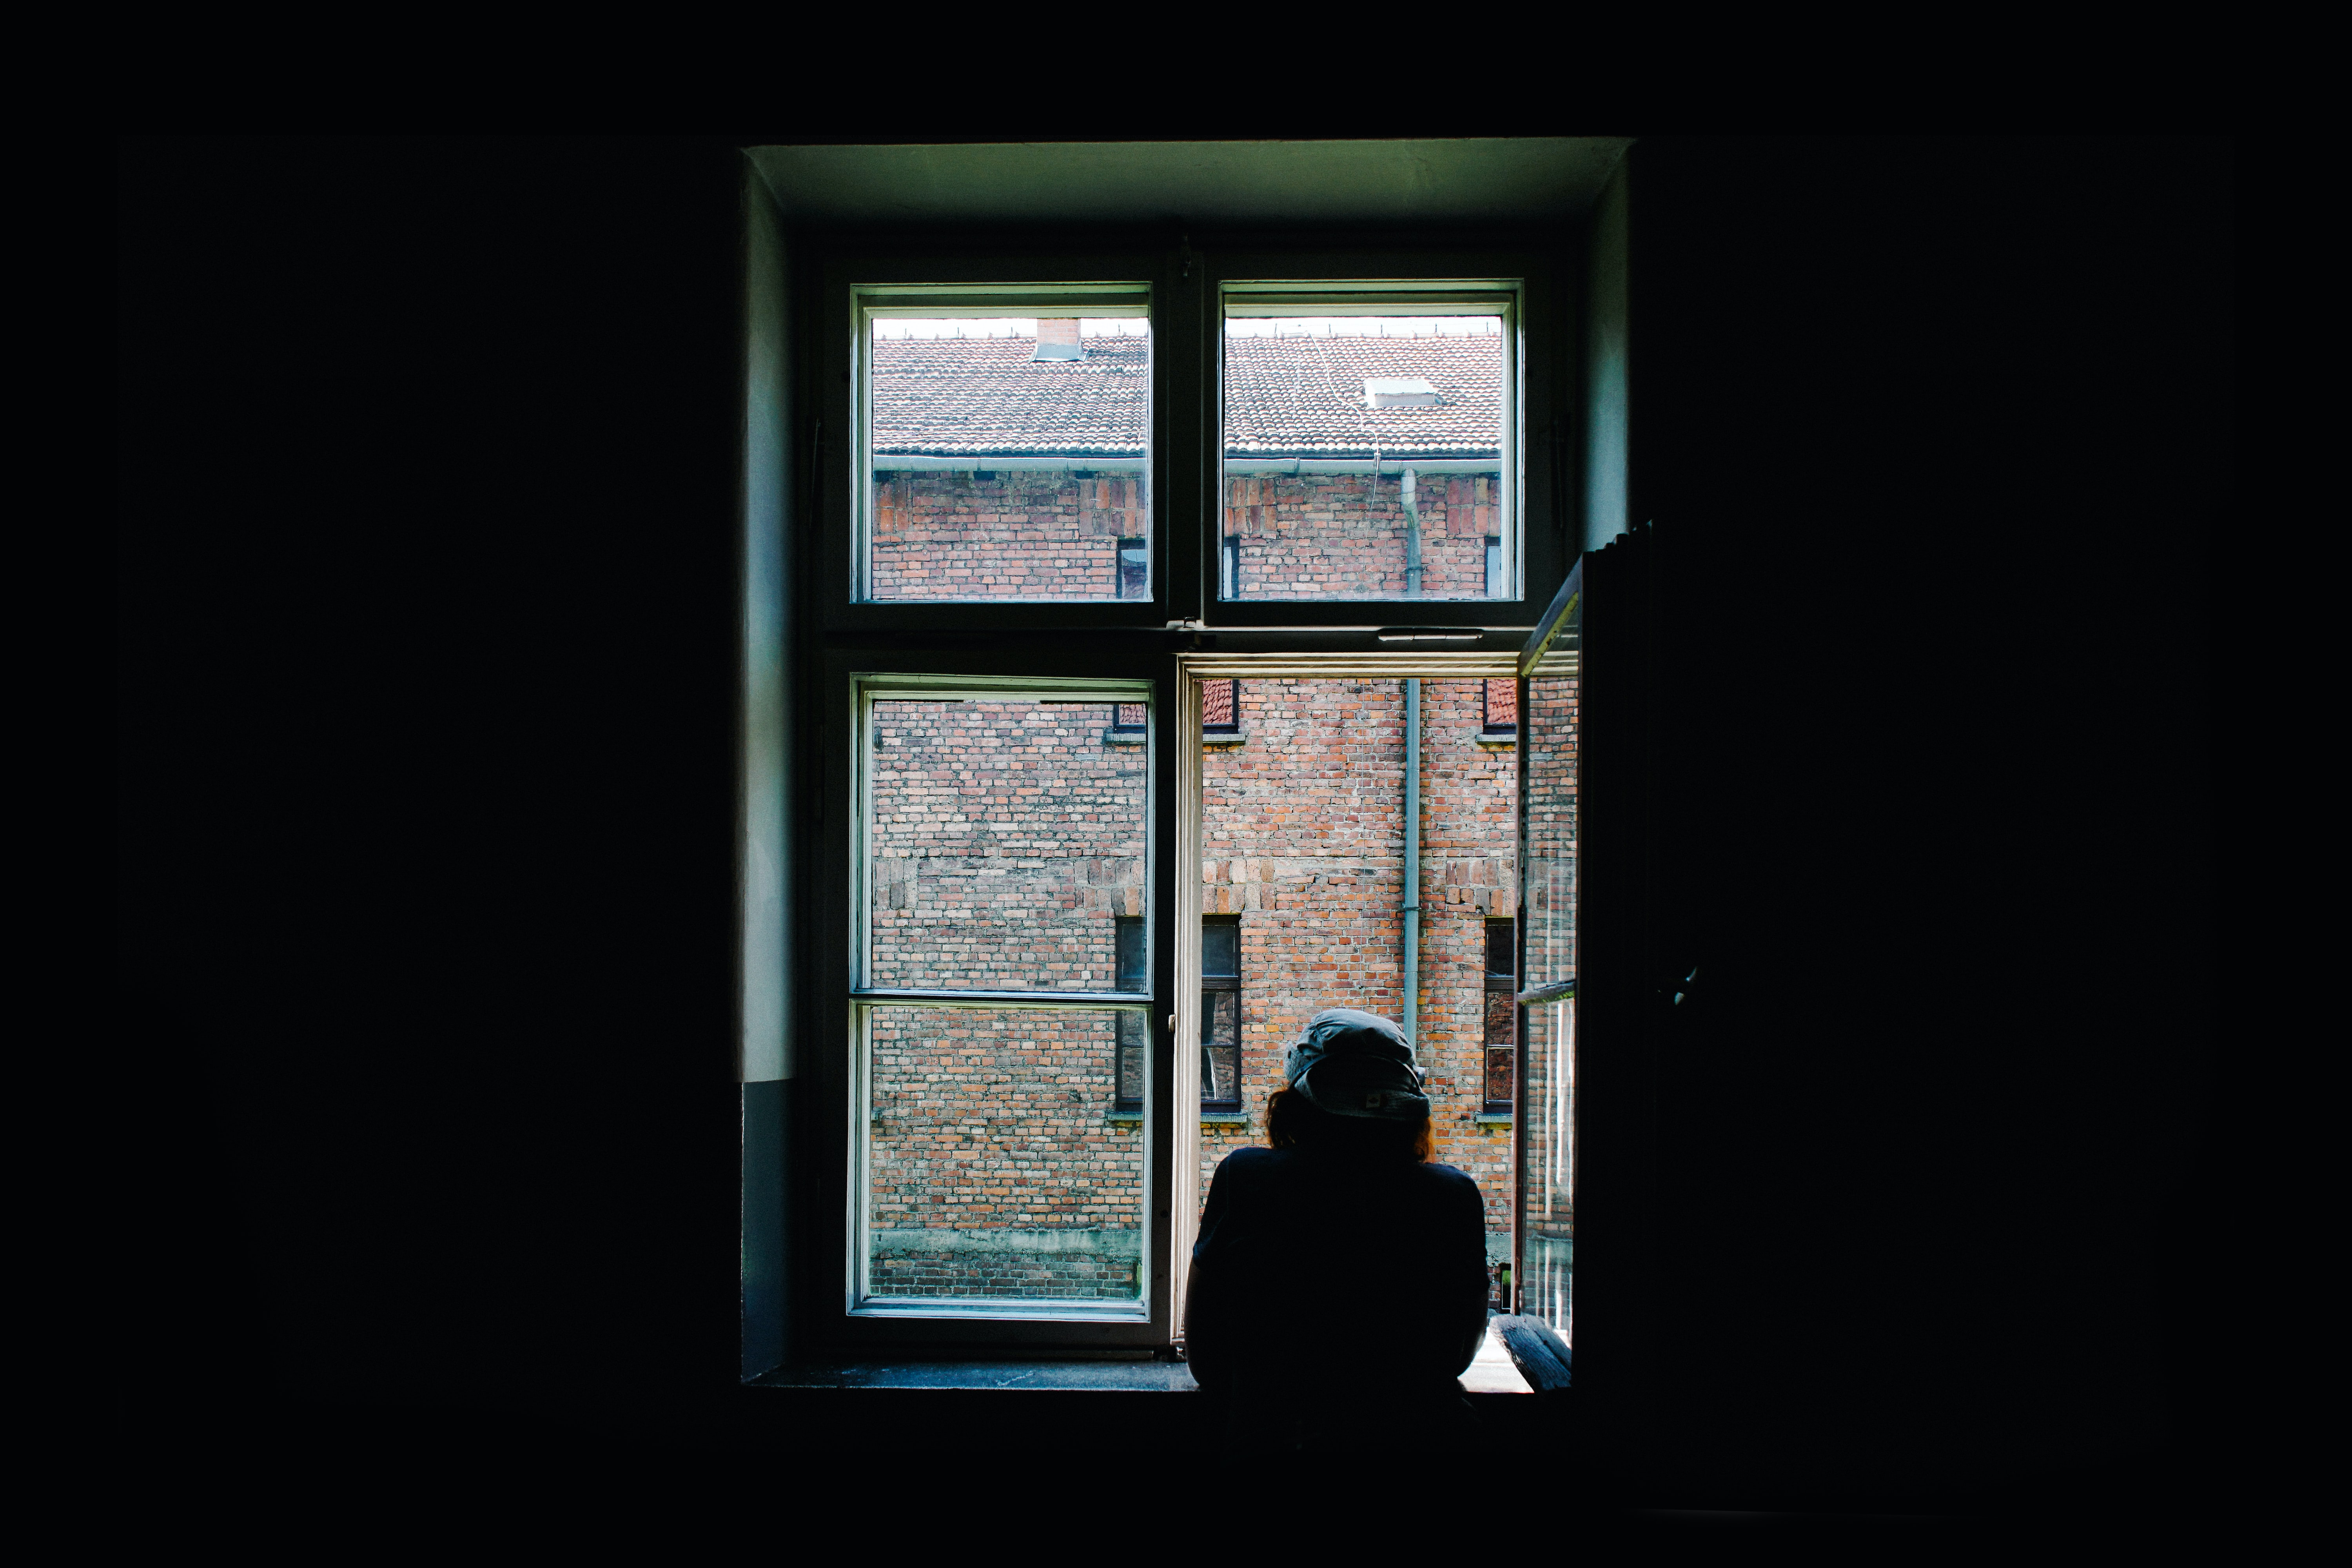 person looking out a window in a dark room